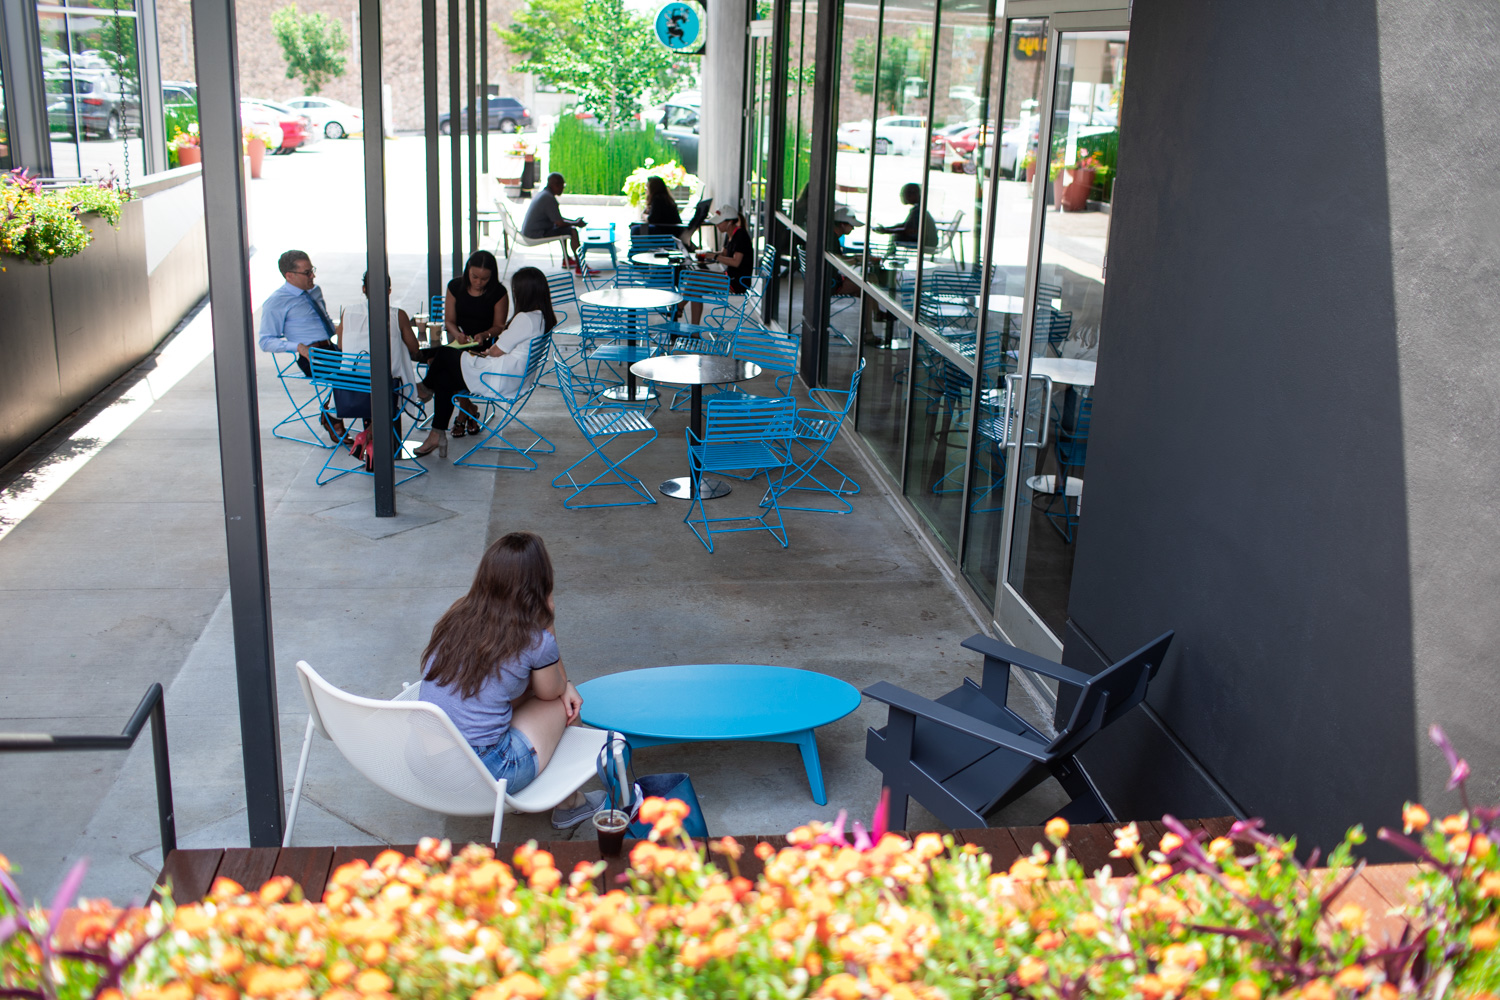 An outdoor patio at Dancing Goats in Buckhead. The outdoor seating is covered and is well-shaded.